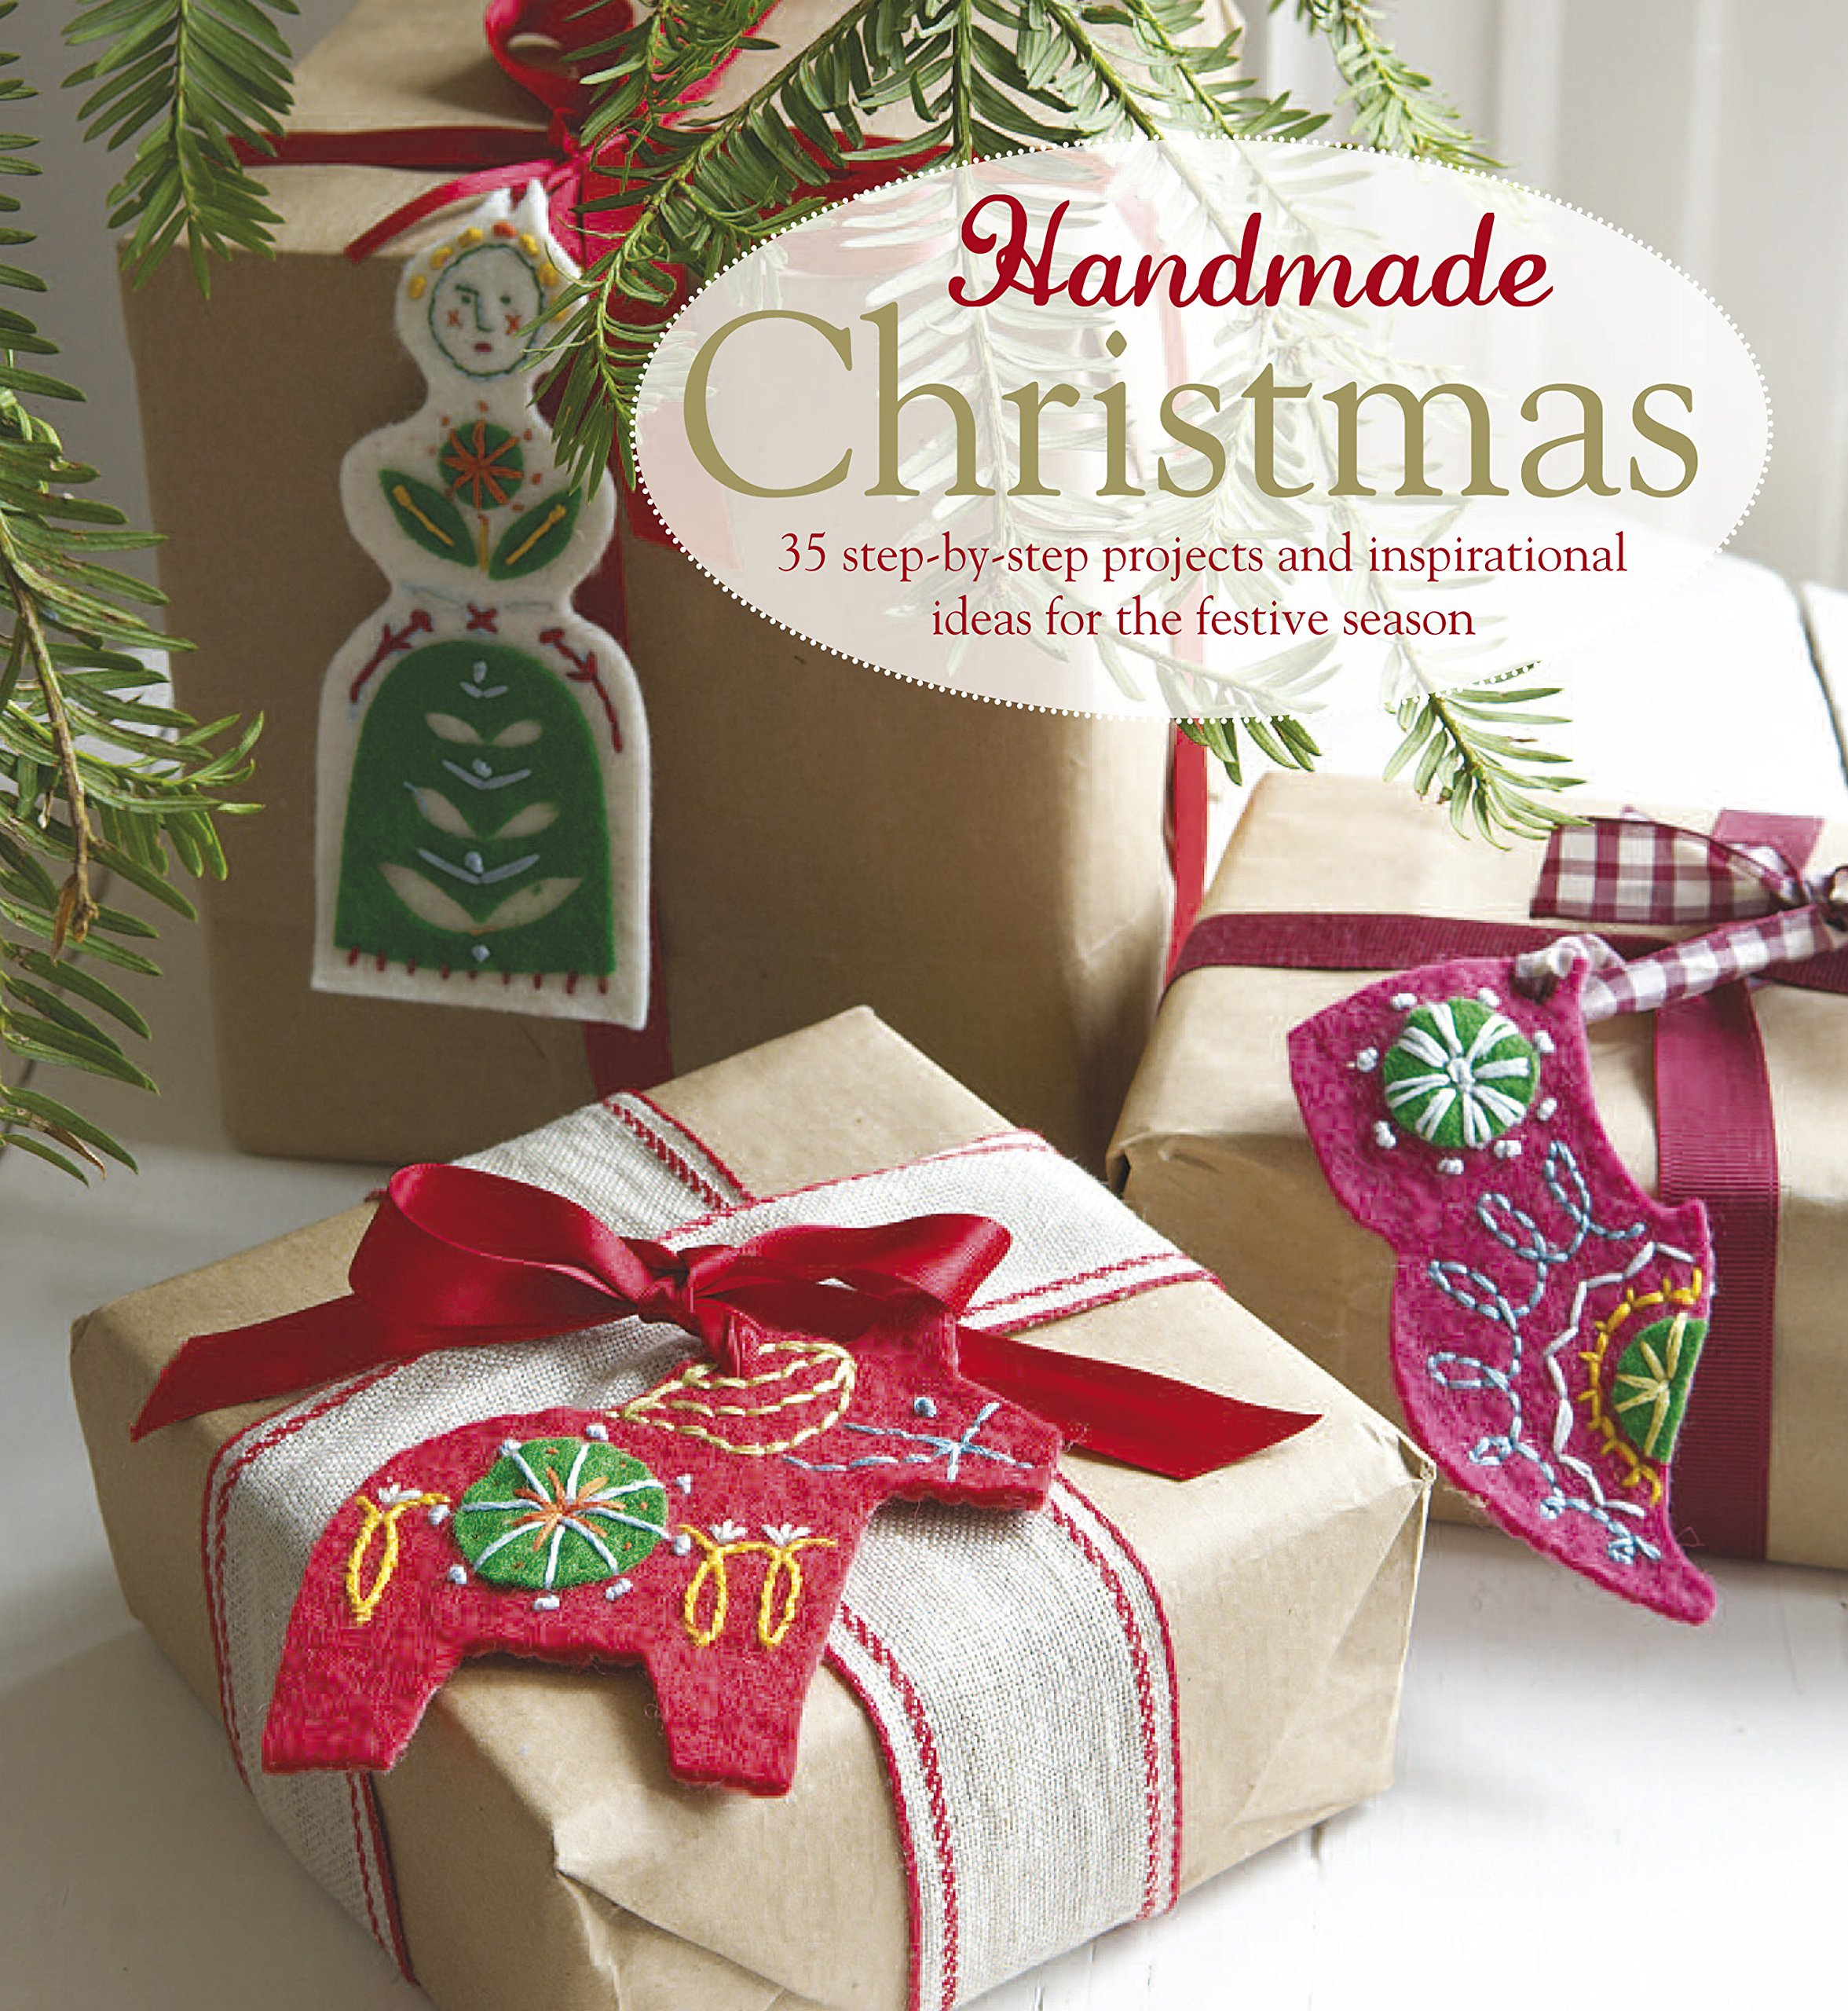 Handmade Christmas Over 35 Step By Step Projects And Inspirational Ideas For The Festive Season Craft Amazon Co Uk Books Cico 9781782492429 Books